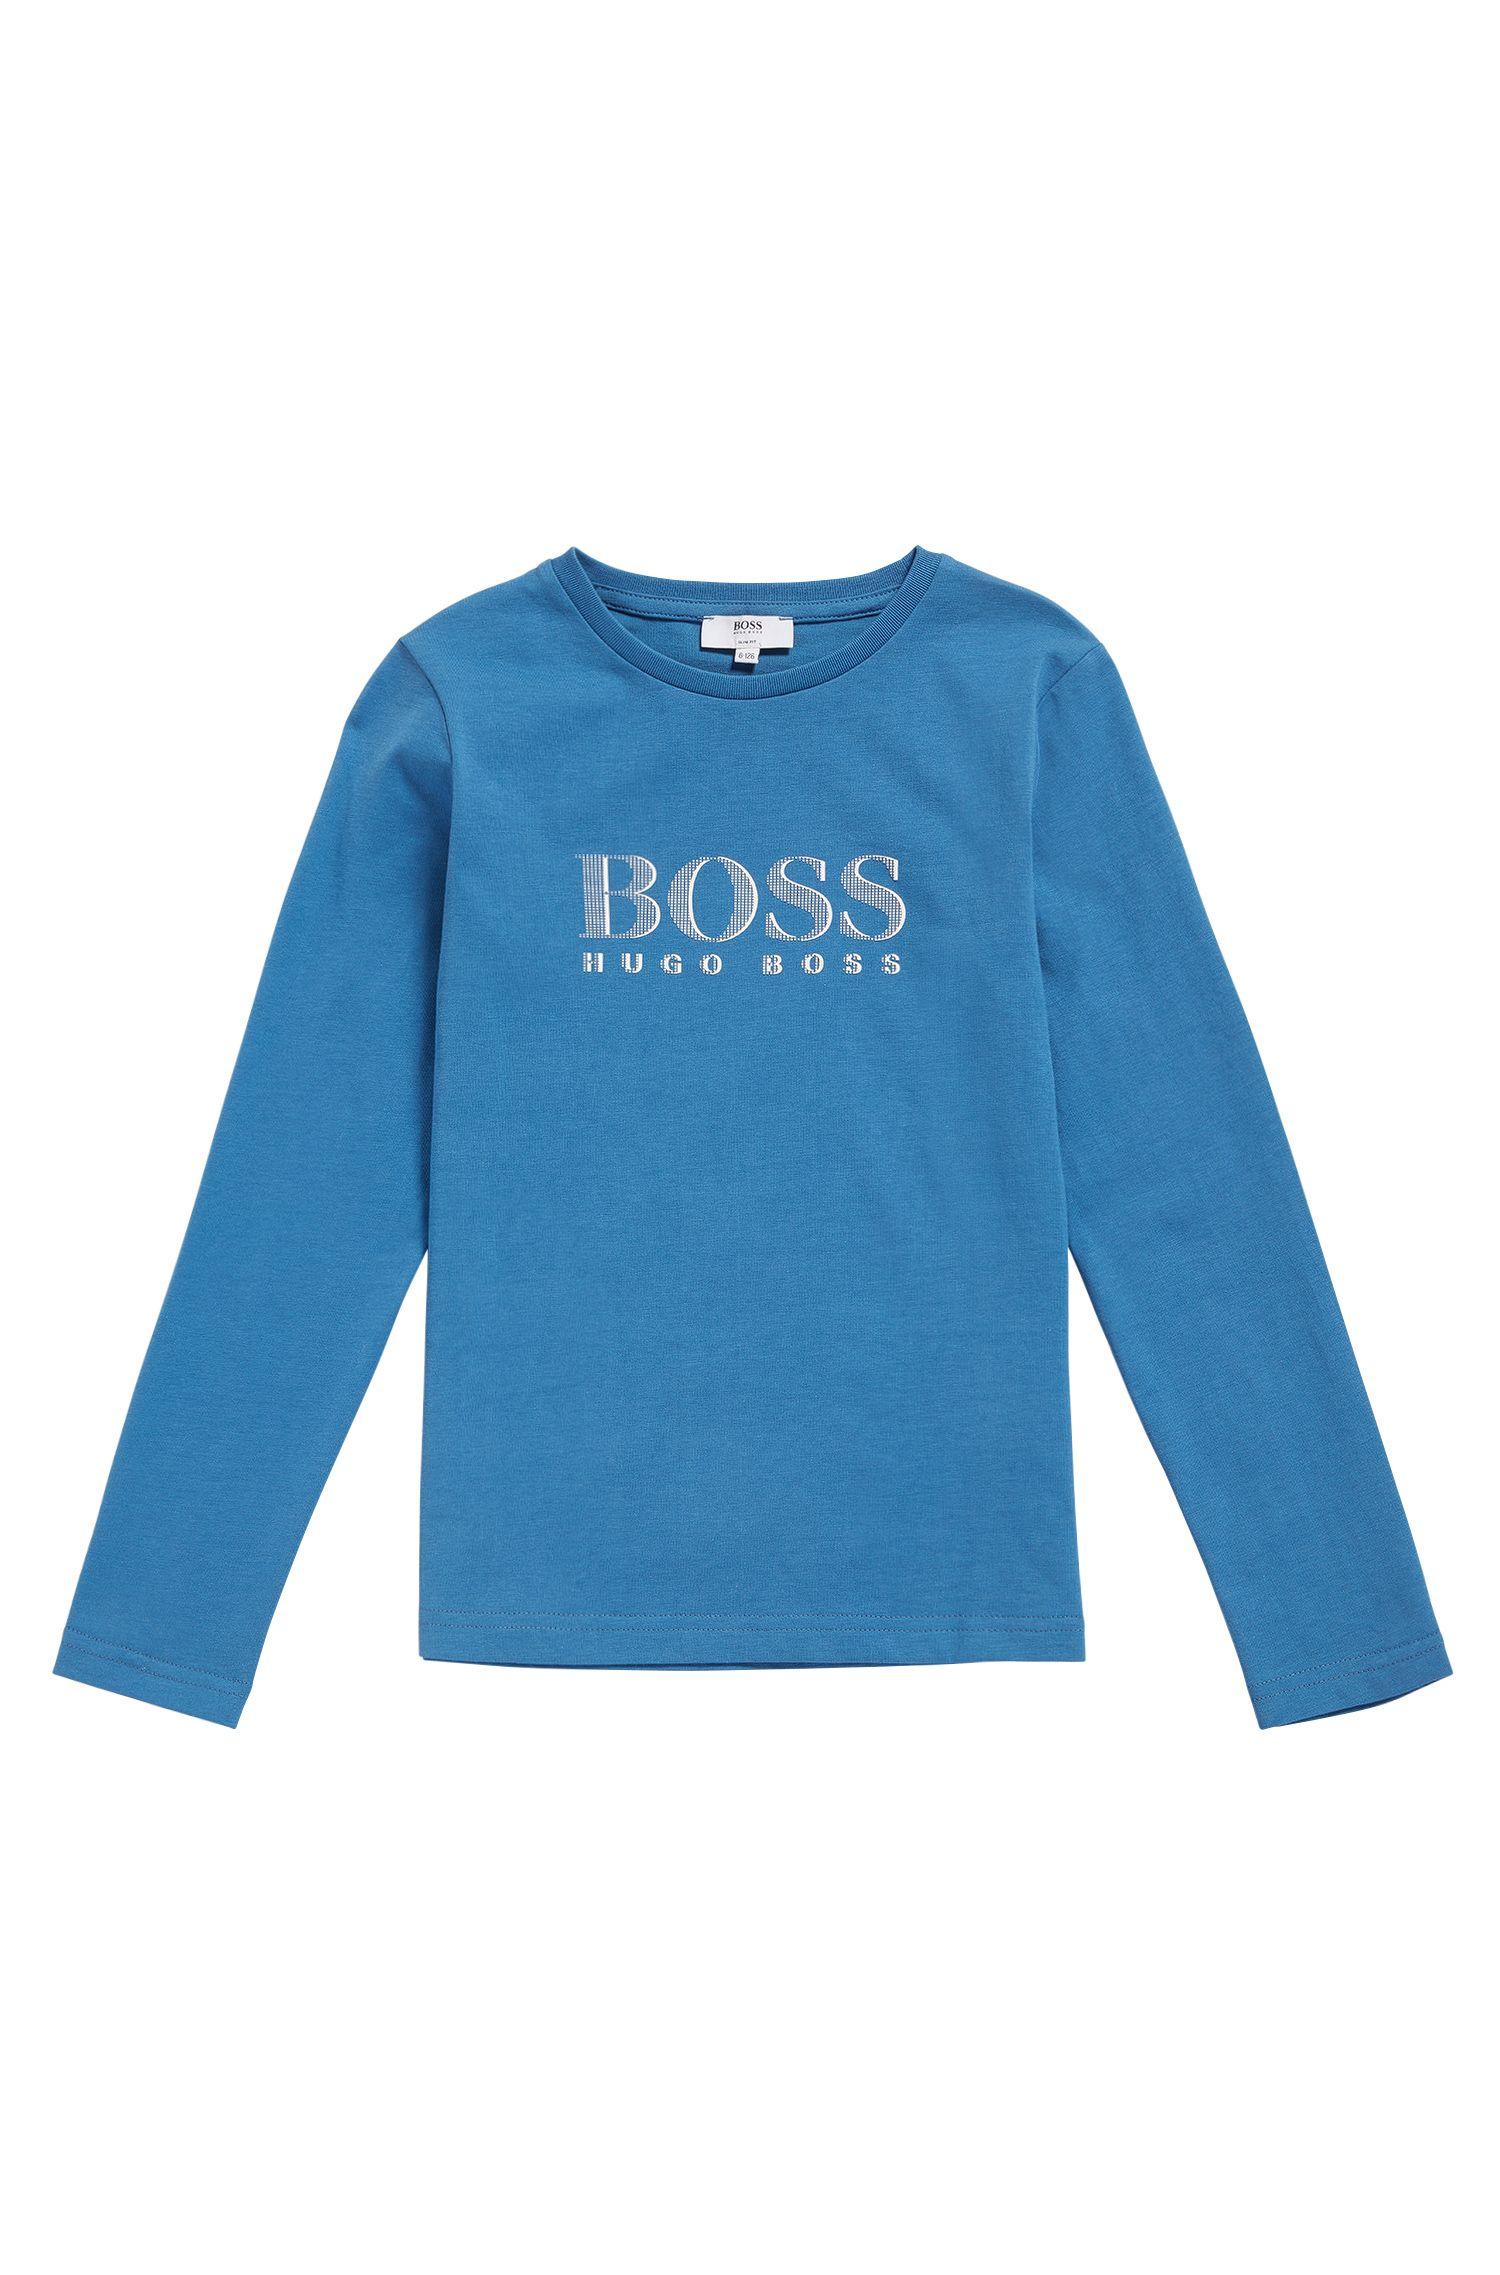 Kids' long-sleeved printed shirt in cotton: 'J25986'